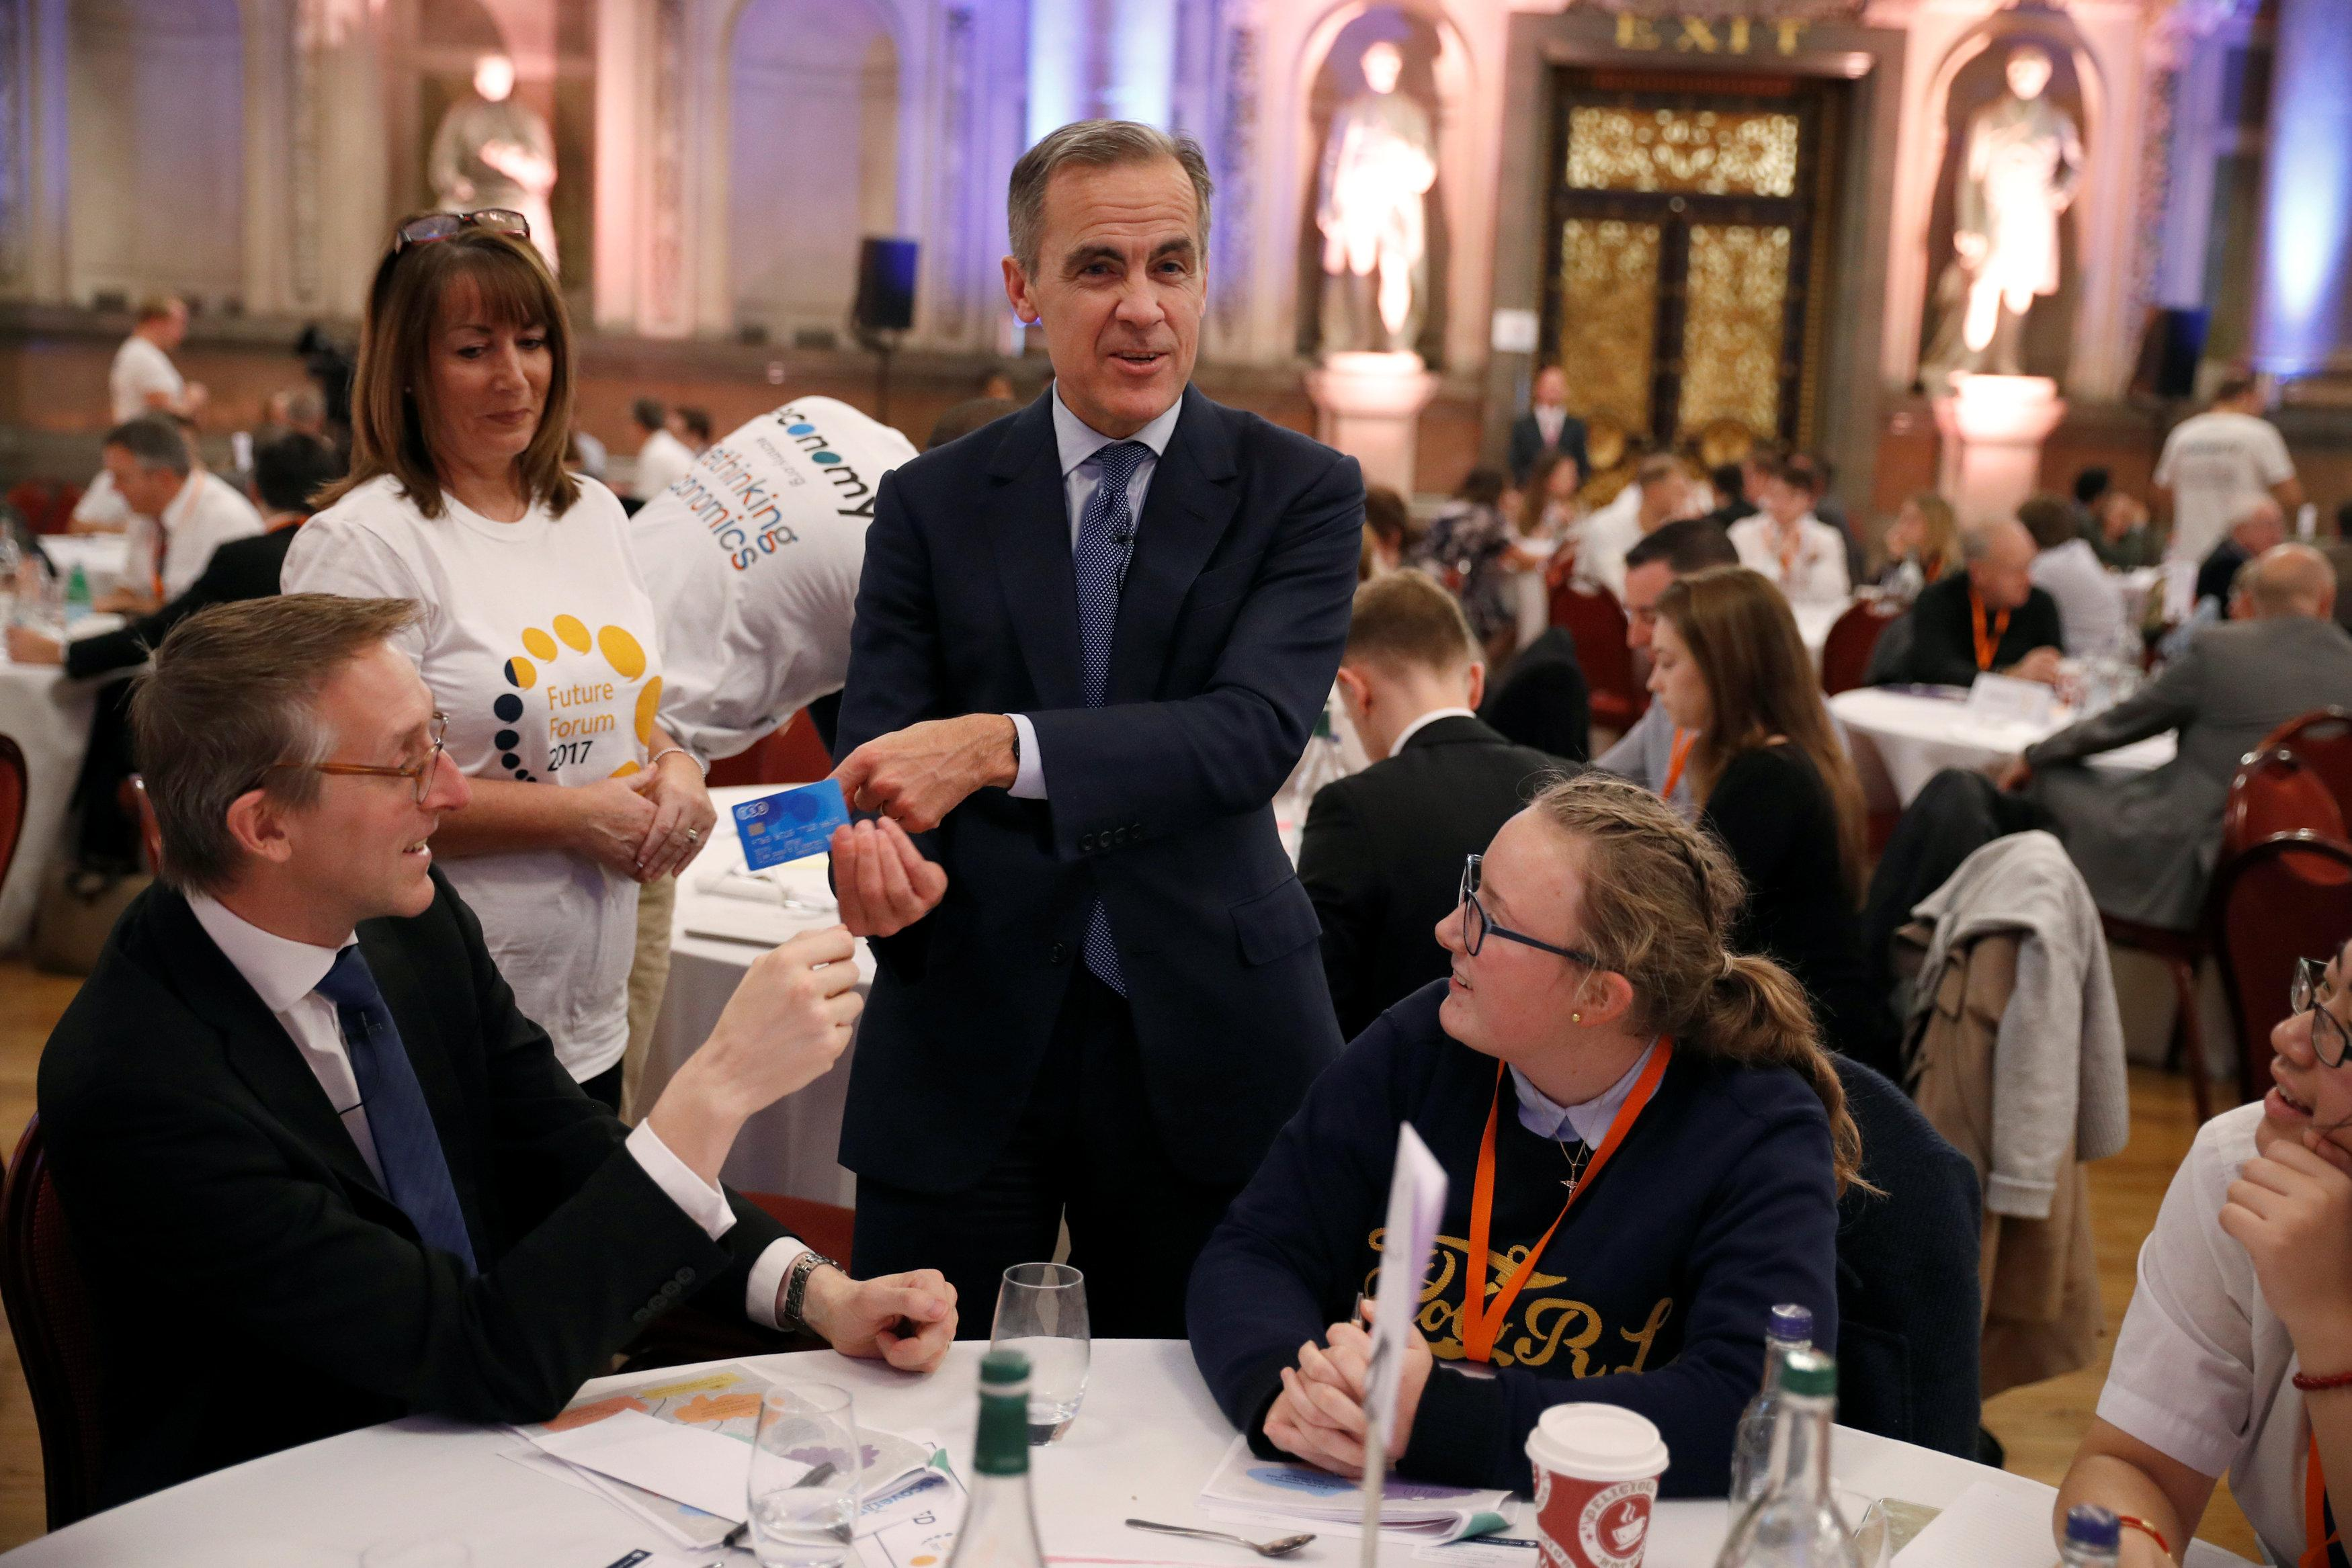 The Governor of the Bank of England, Mark Carney, holds a credit card as he speaks to guests during a meal at the